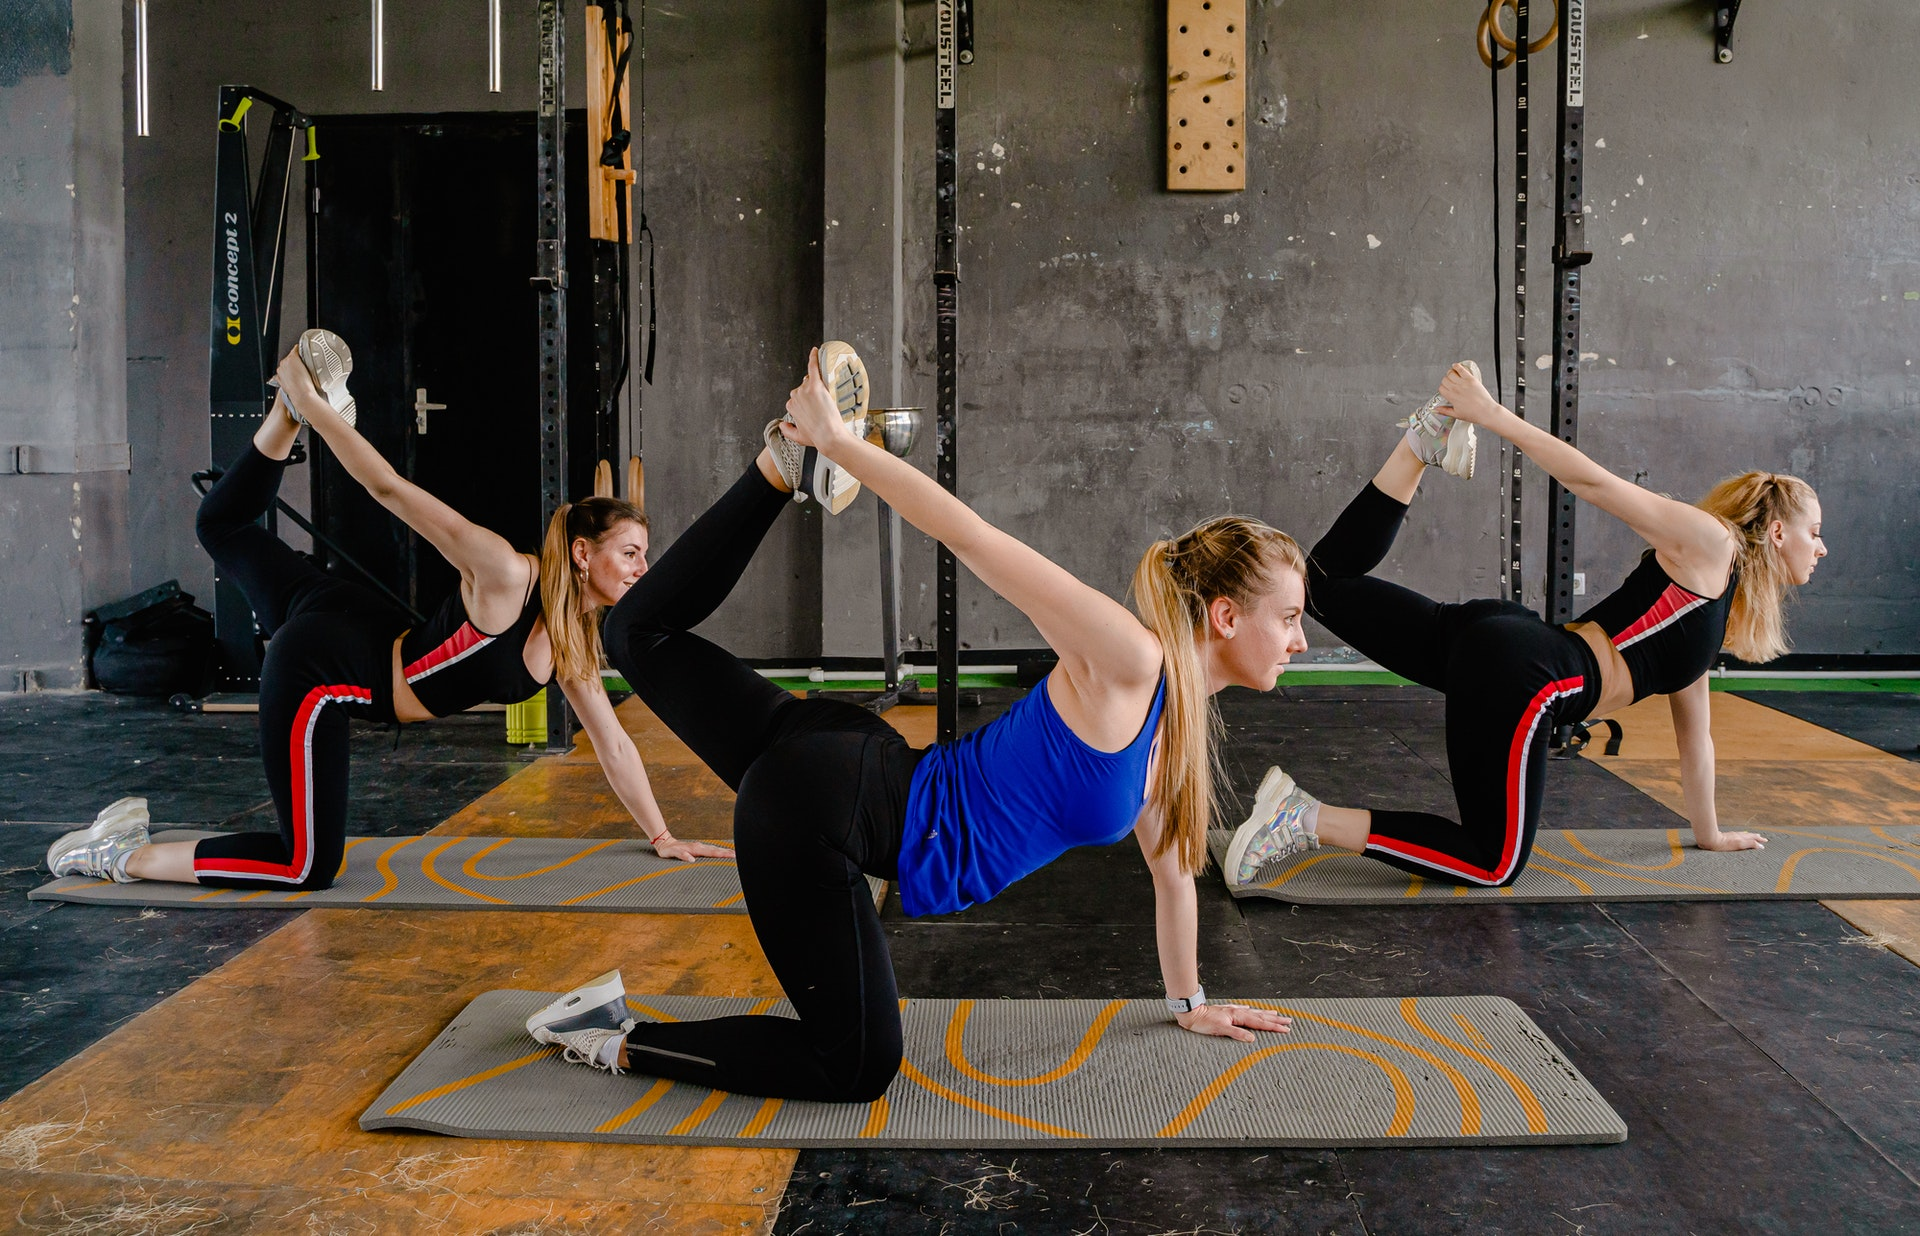 COVID-19 Prompts Health and Fitness Craze